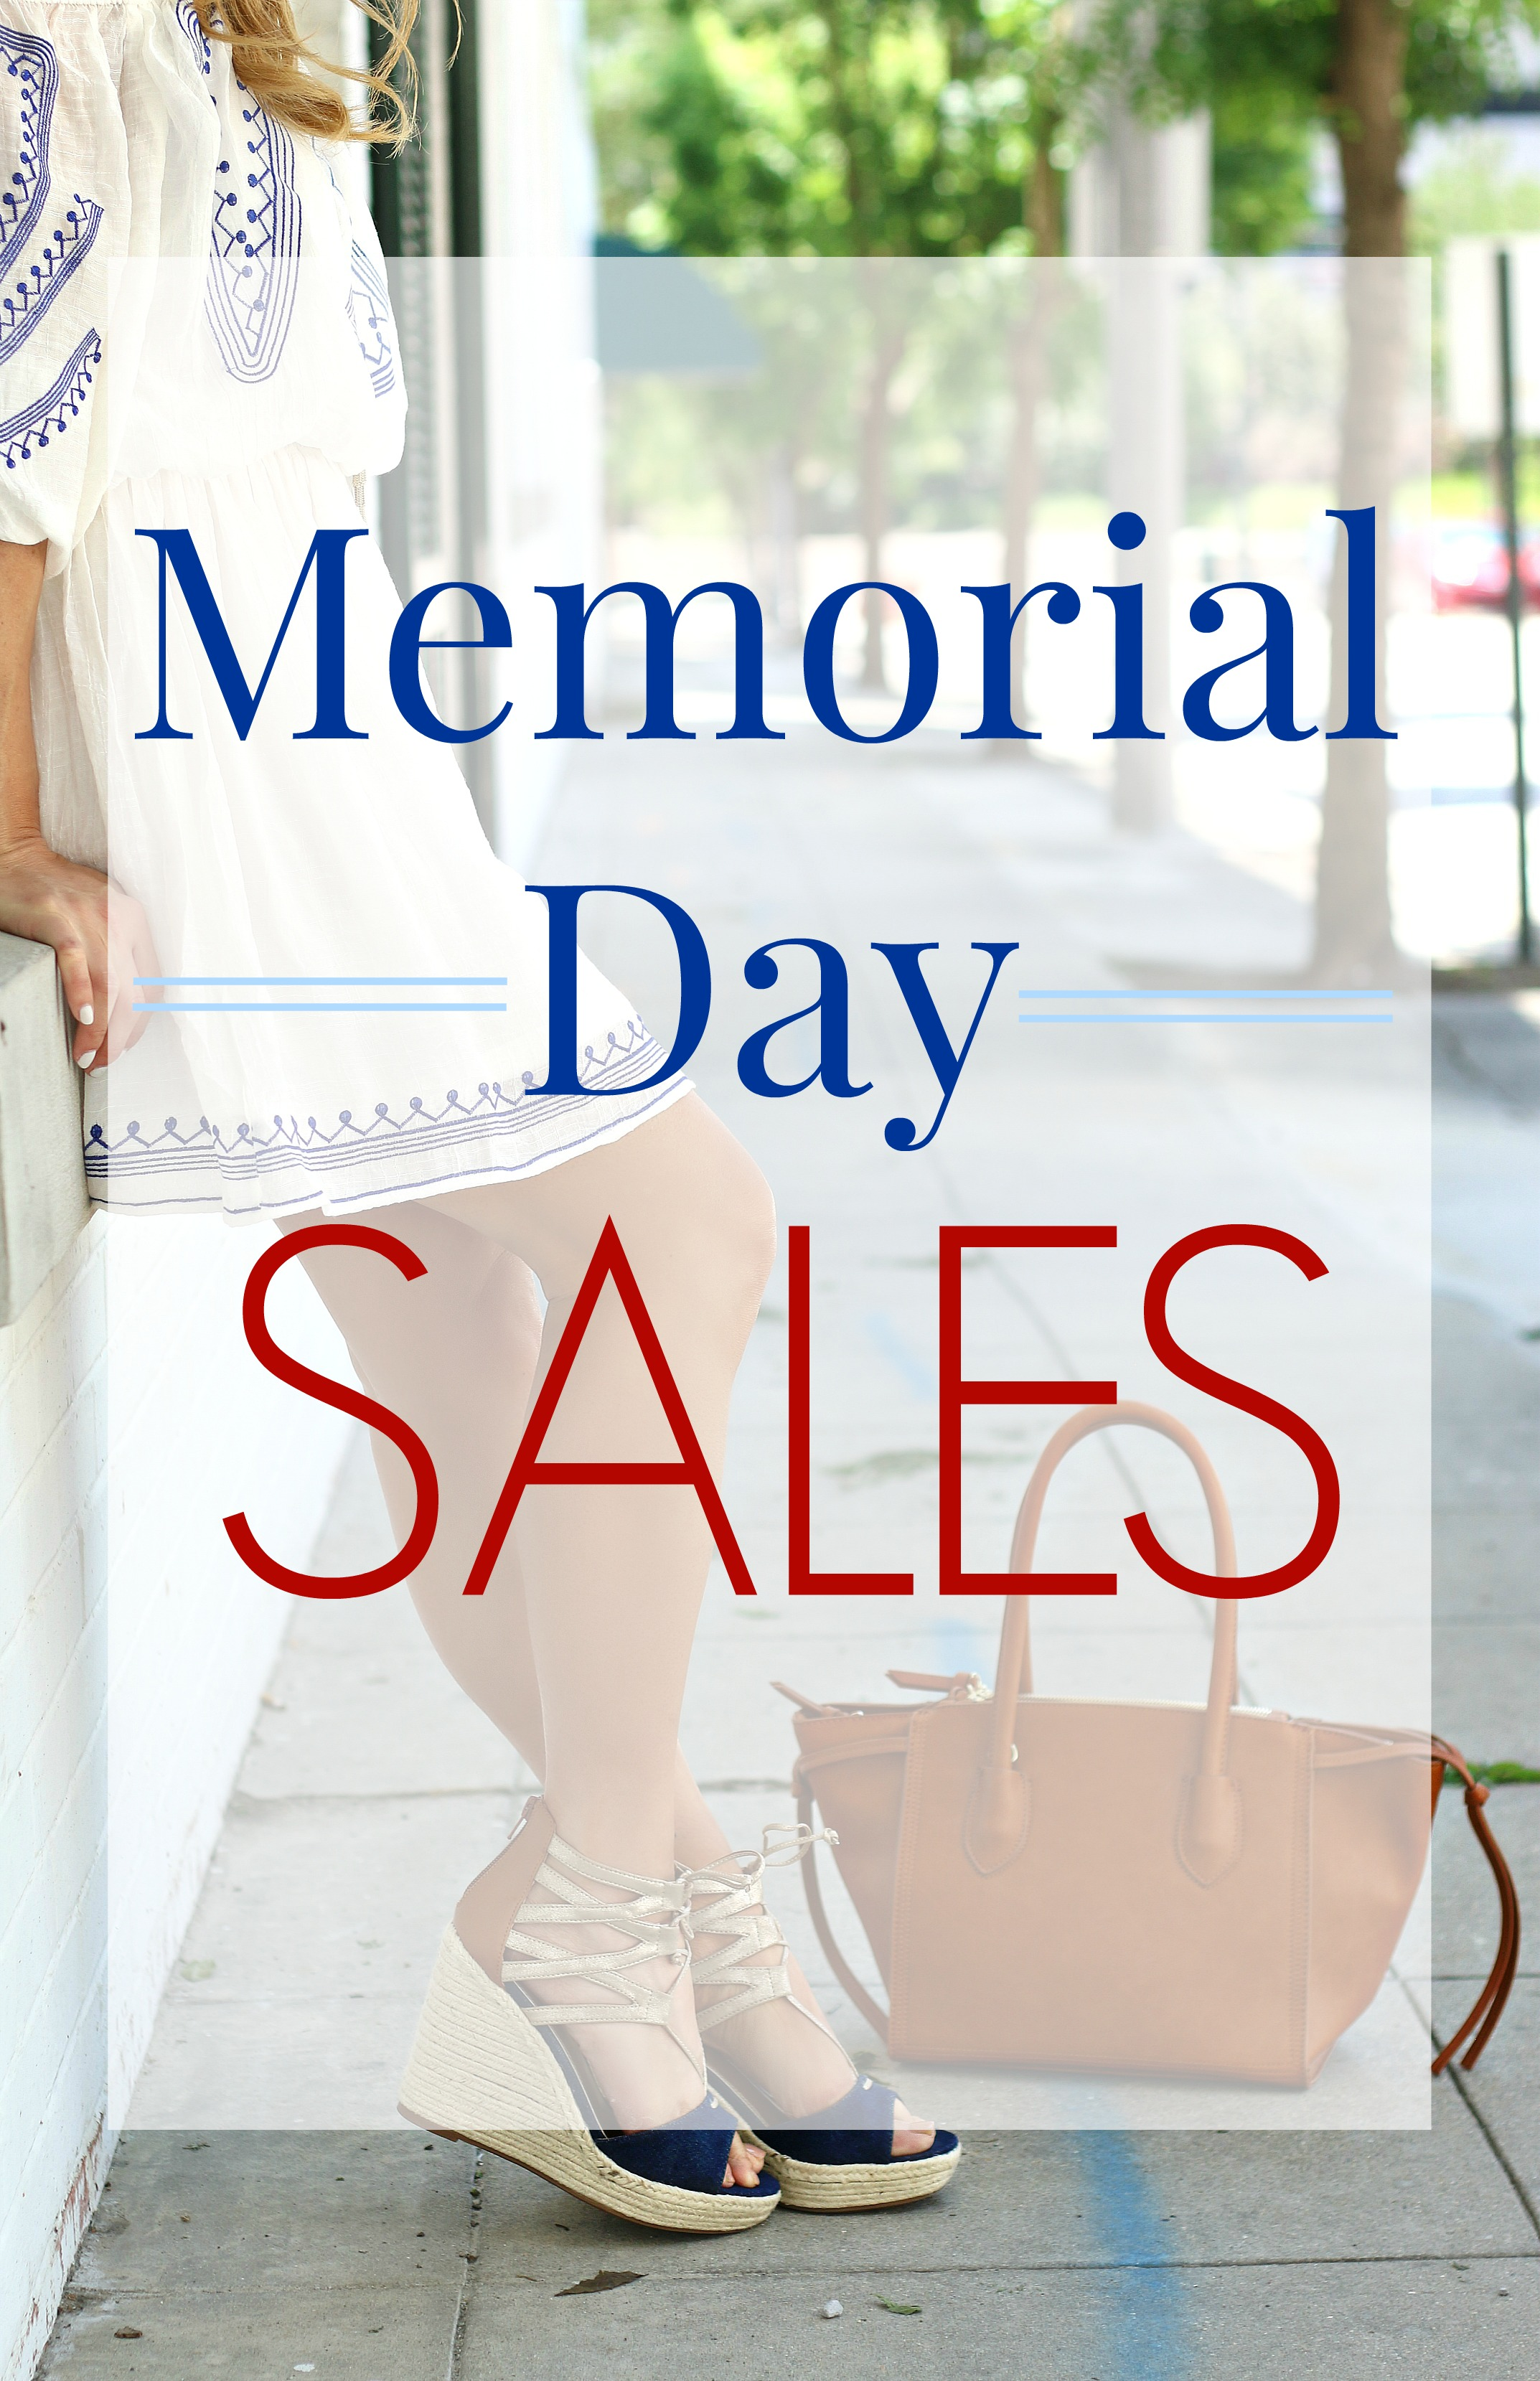 Enjoy Our Memorial Day Sales Don't miss out on our fabulous Memorial Day sales! Enjoy amazing savings on appliances from Samsung, LG, GE and many other top brands.